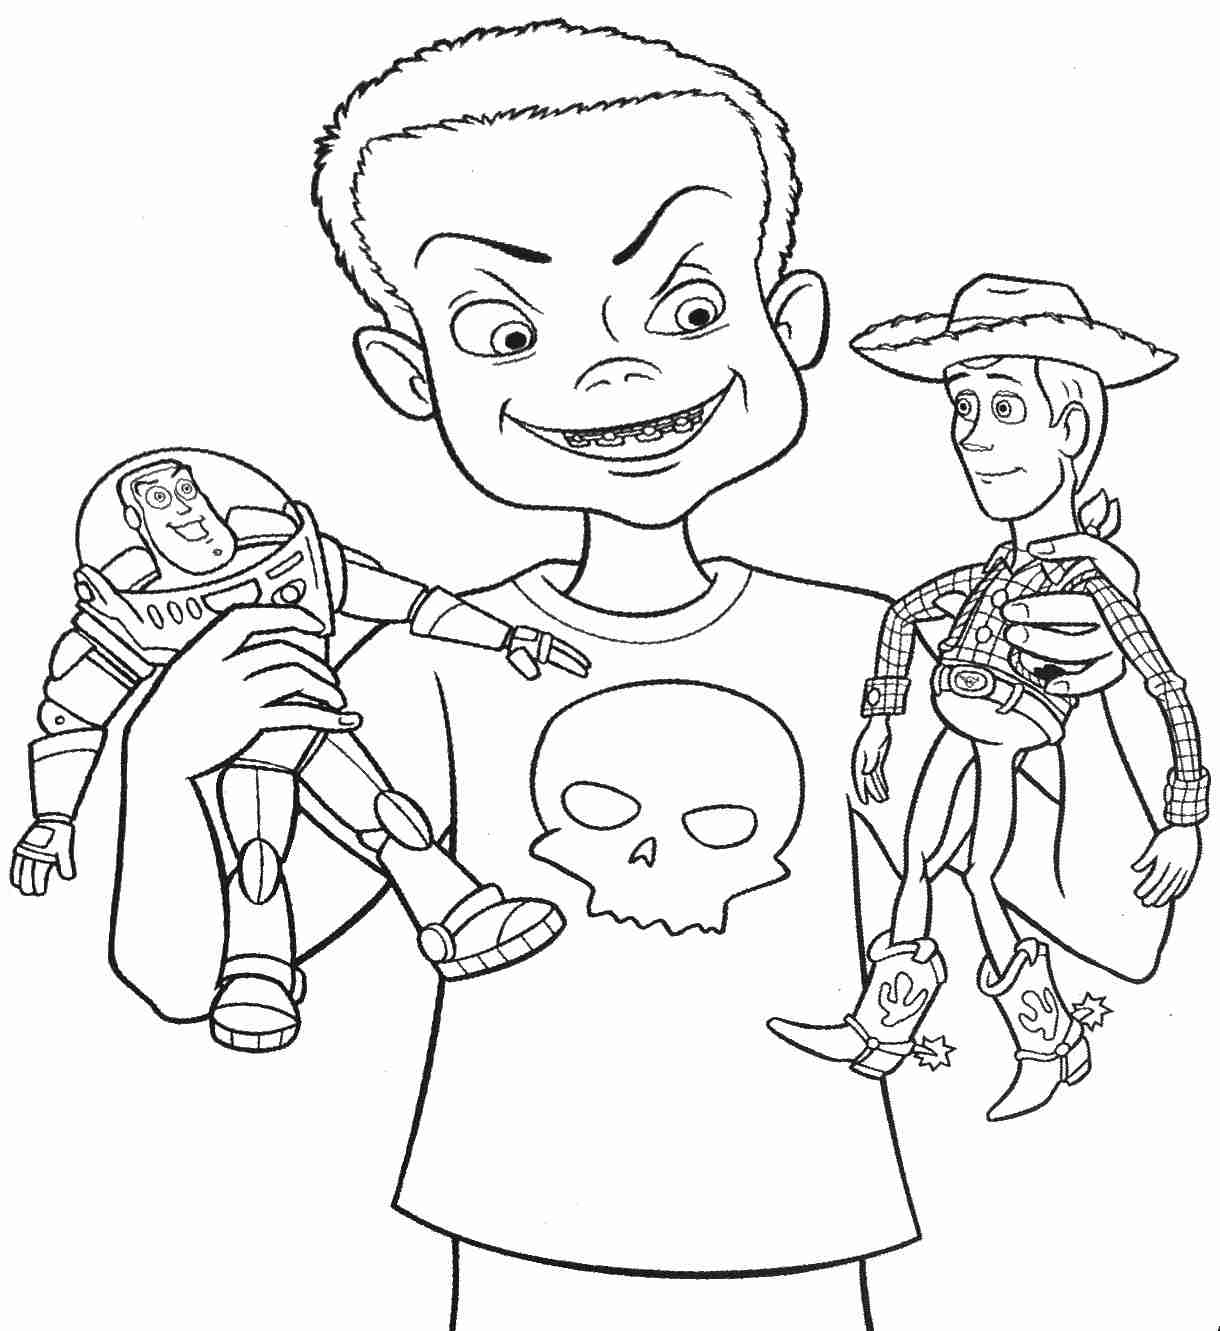 1220x1331 Buzz Lightyear Toy Story Coloring Pages Free For Kids Unusual